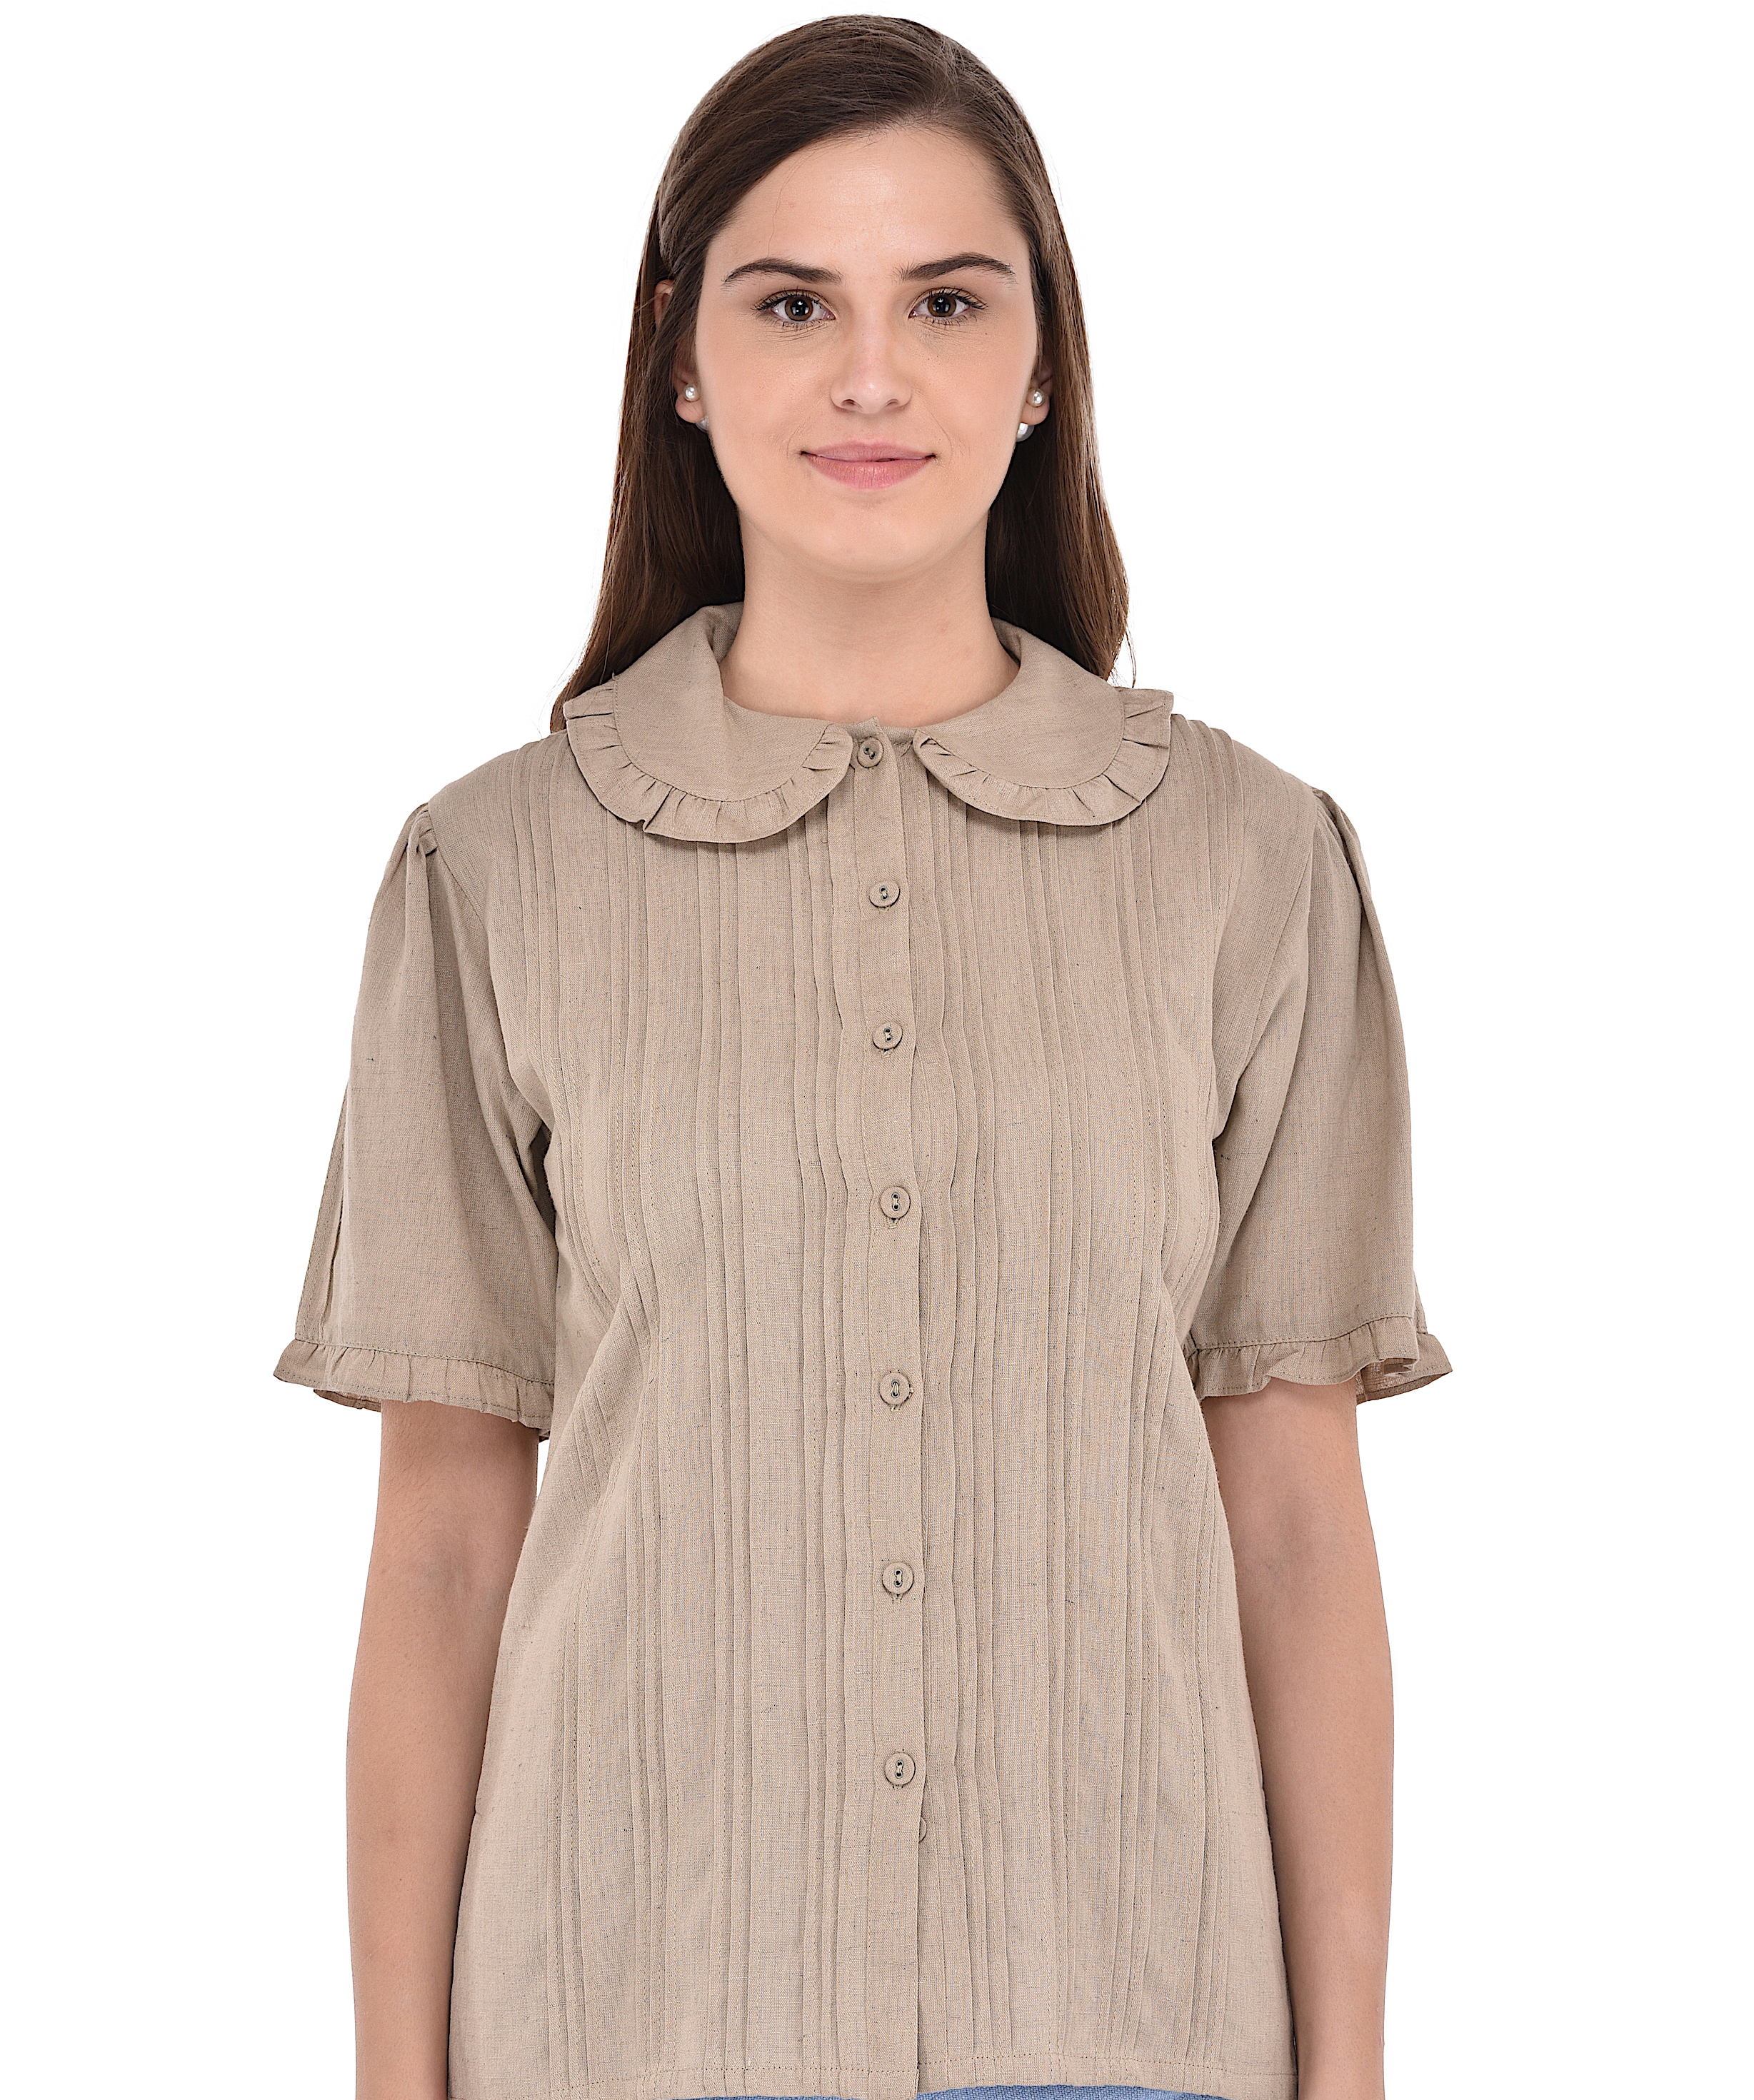 f2af6d724ff61 Peter Pan Collar Blouse ...